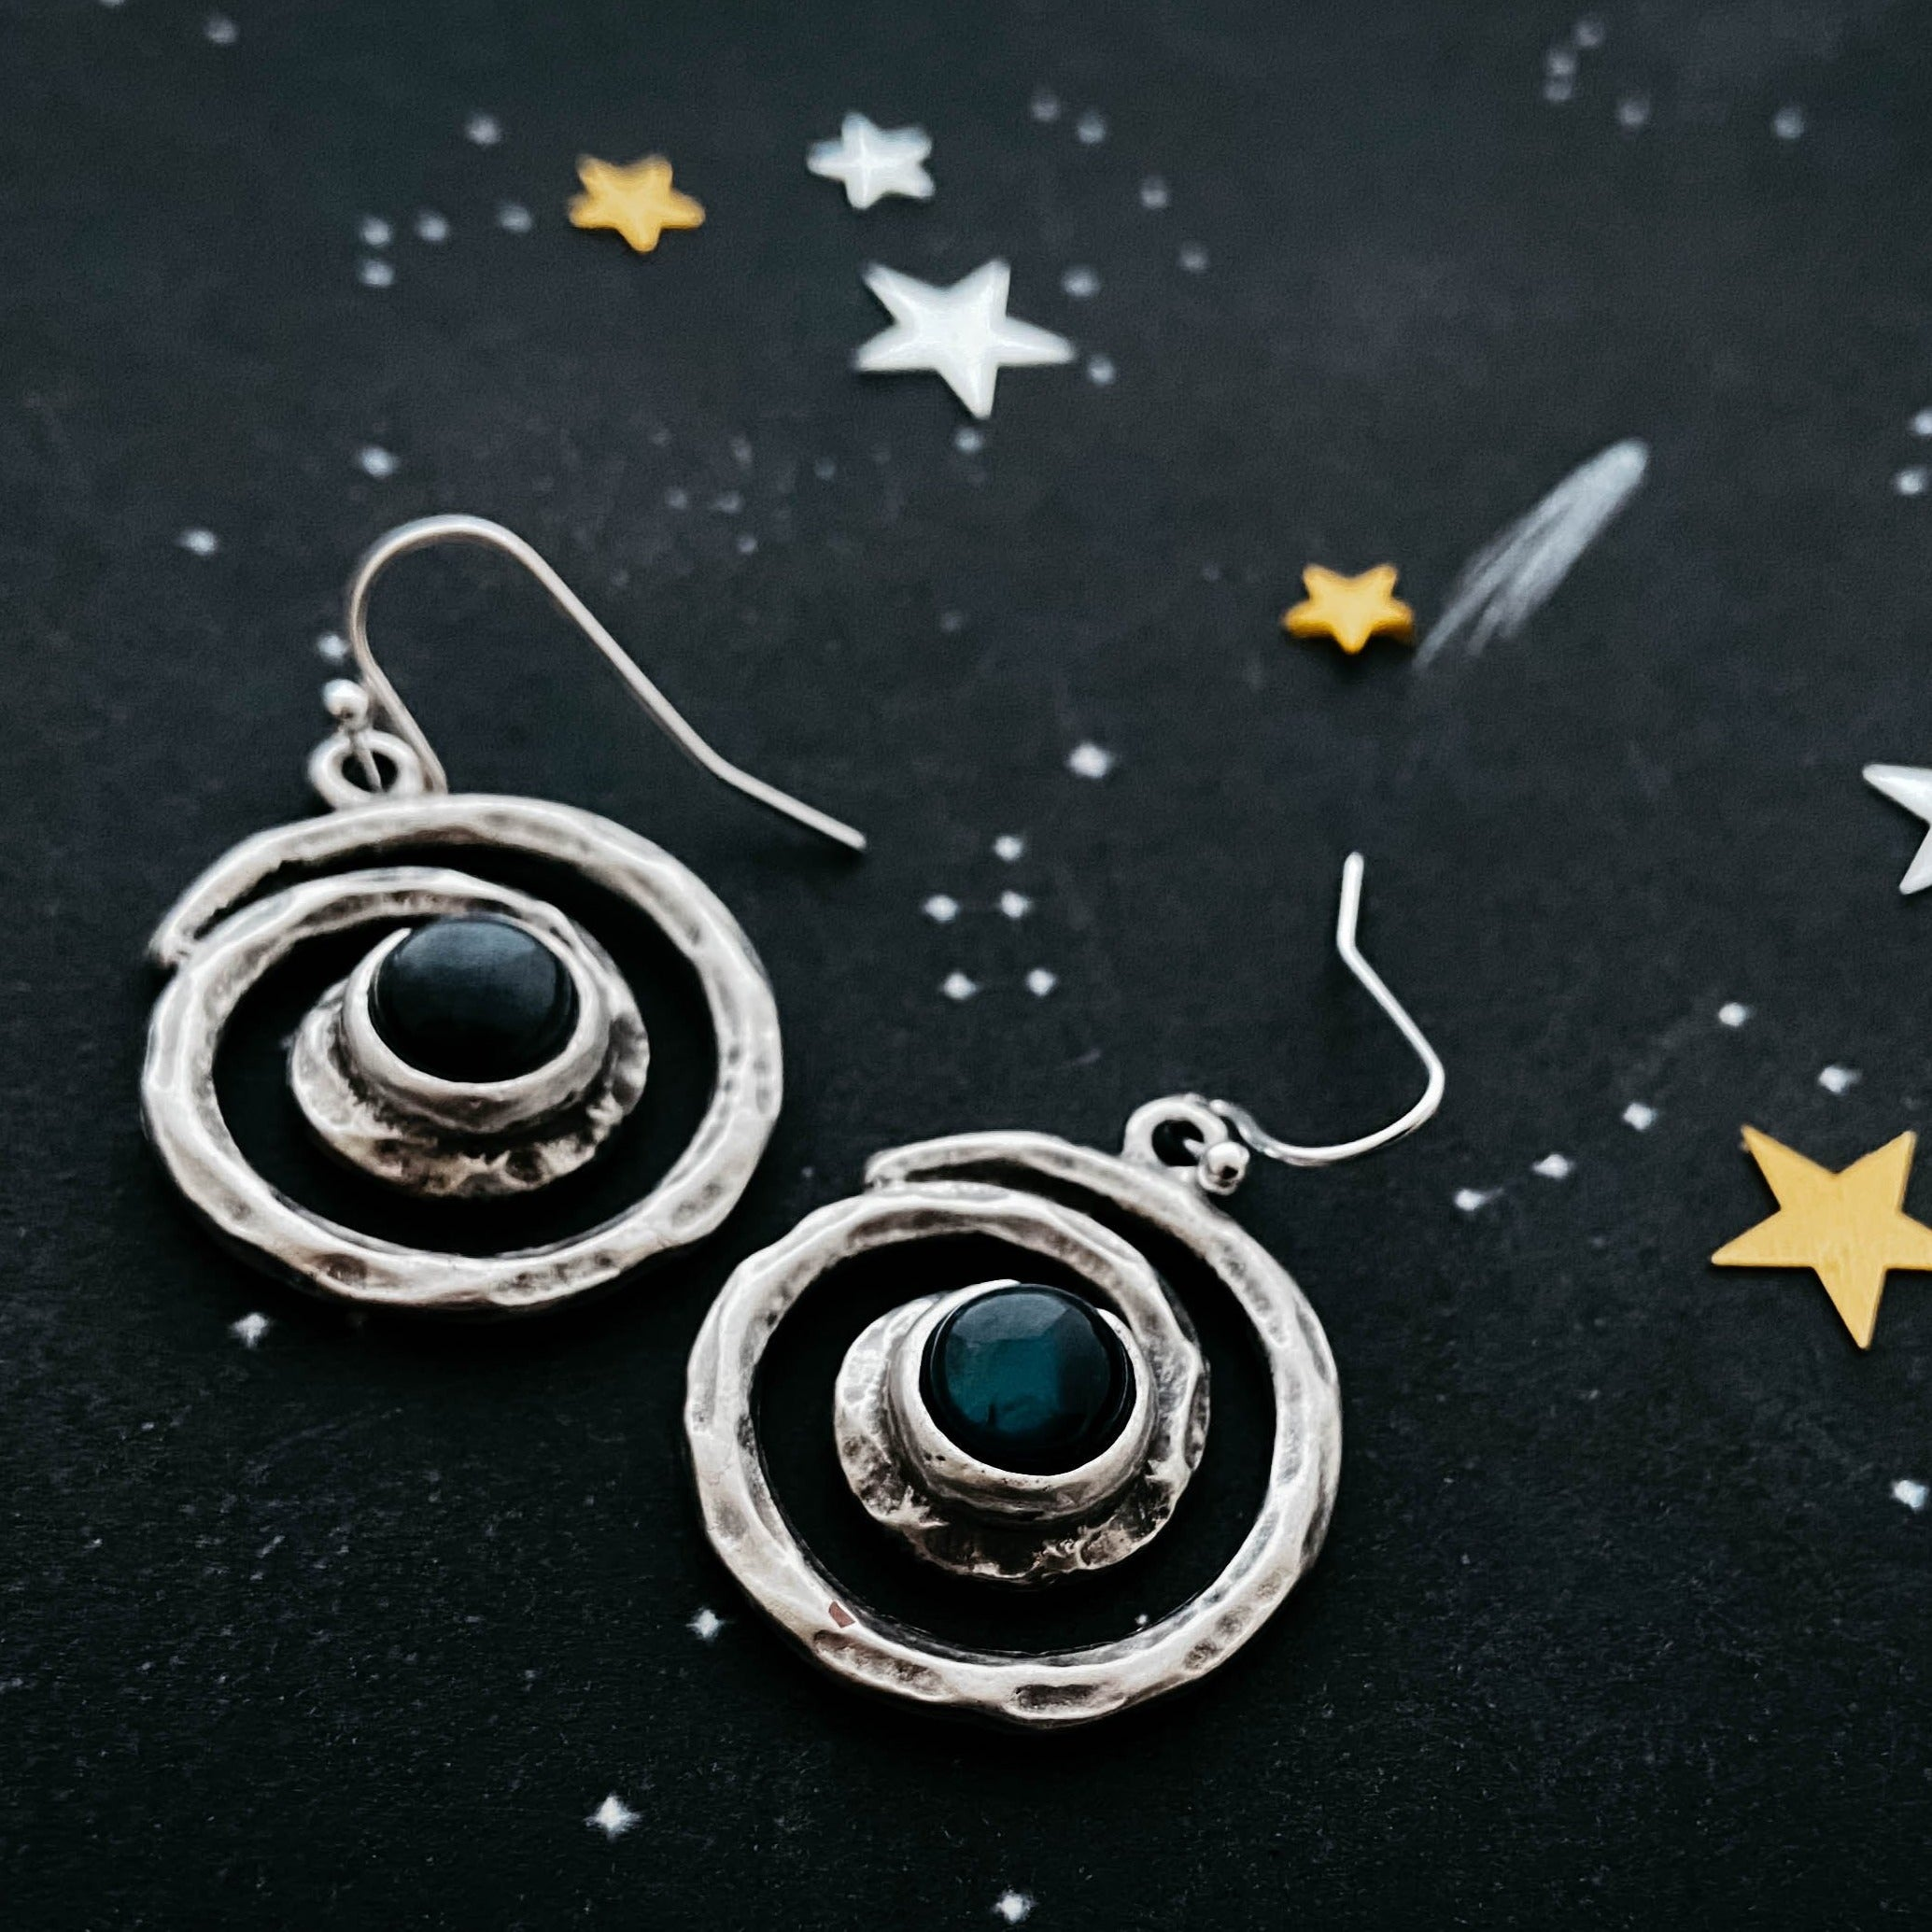 Milky way earrings - Organic hammered spiral dangle earrings with labradorite - celestial jewelry by Yugen Tribe